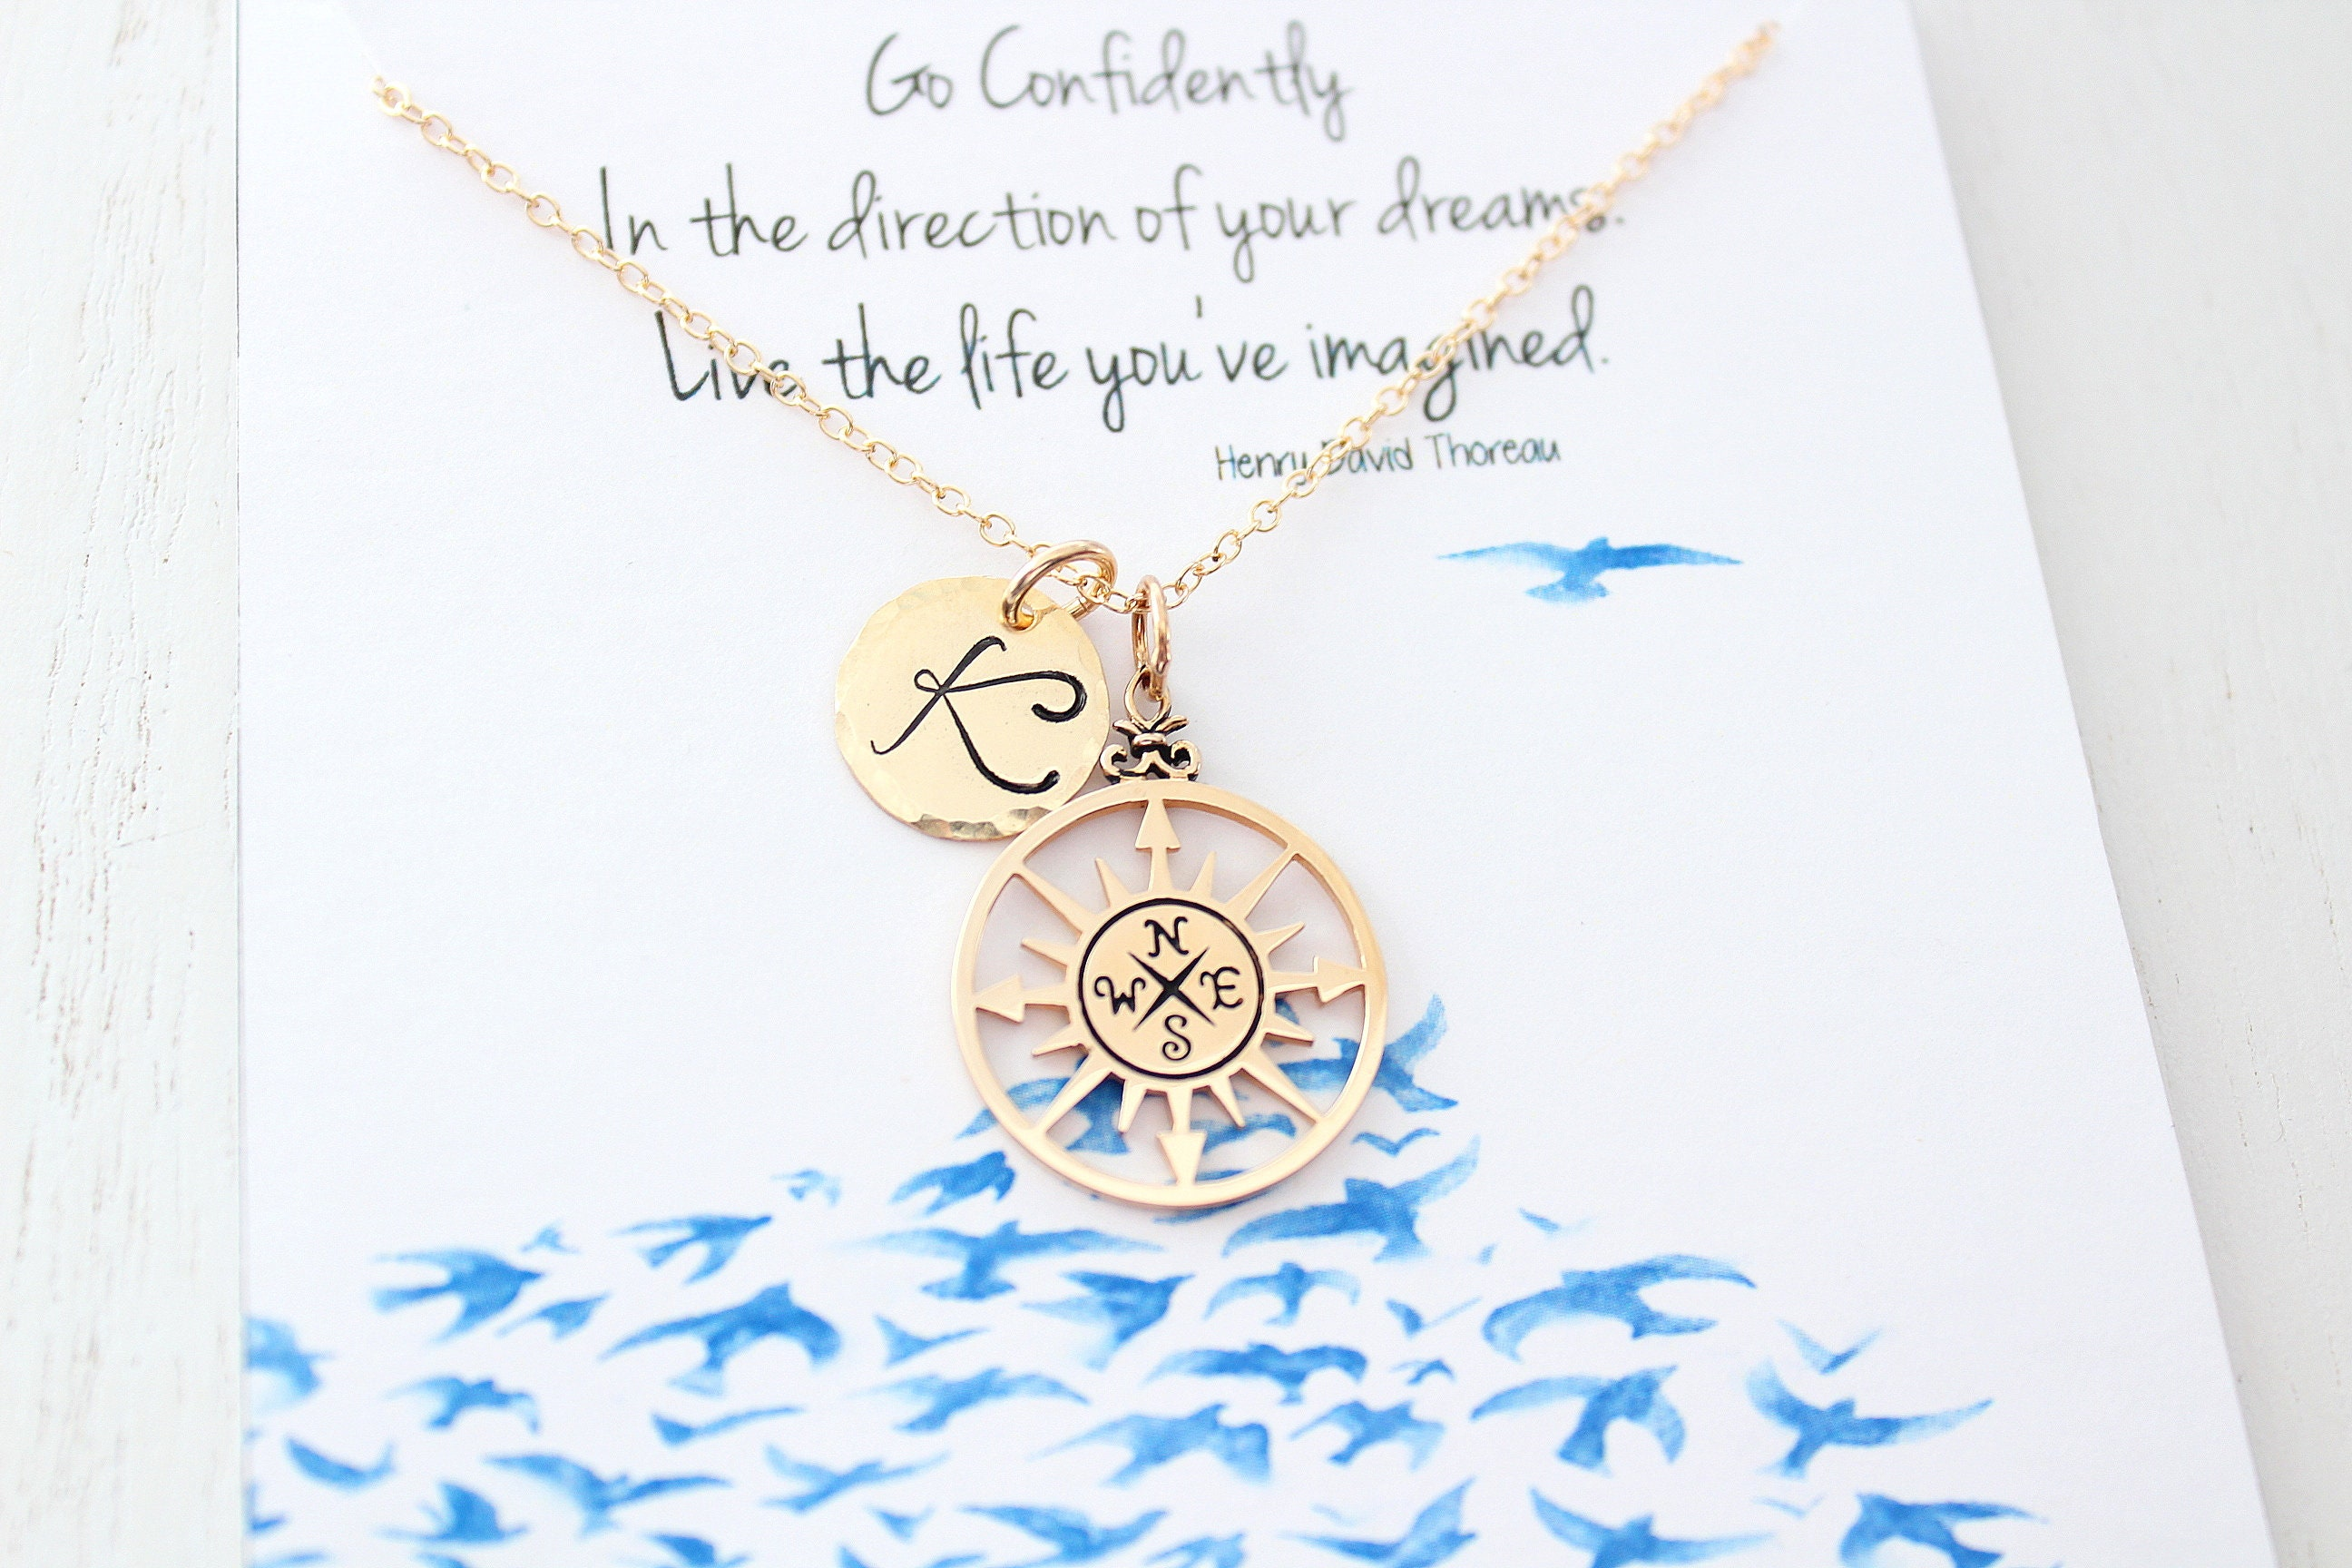 Friendship Jewelry Compass Necklace Gold Best Friend Gifts Graduation Gift Ideas College Graduate Friendship Necklace Compass